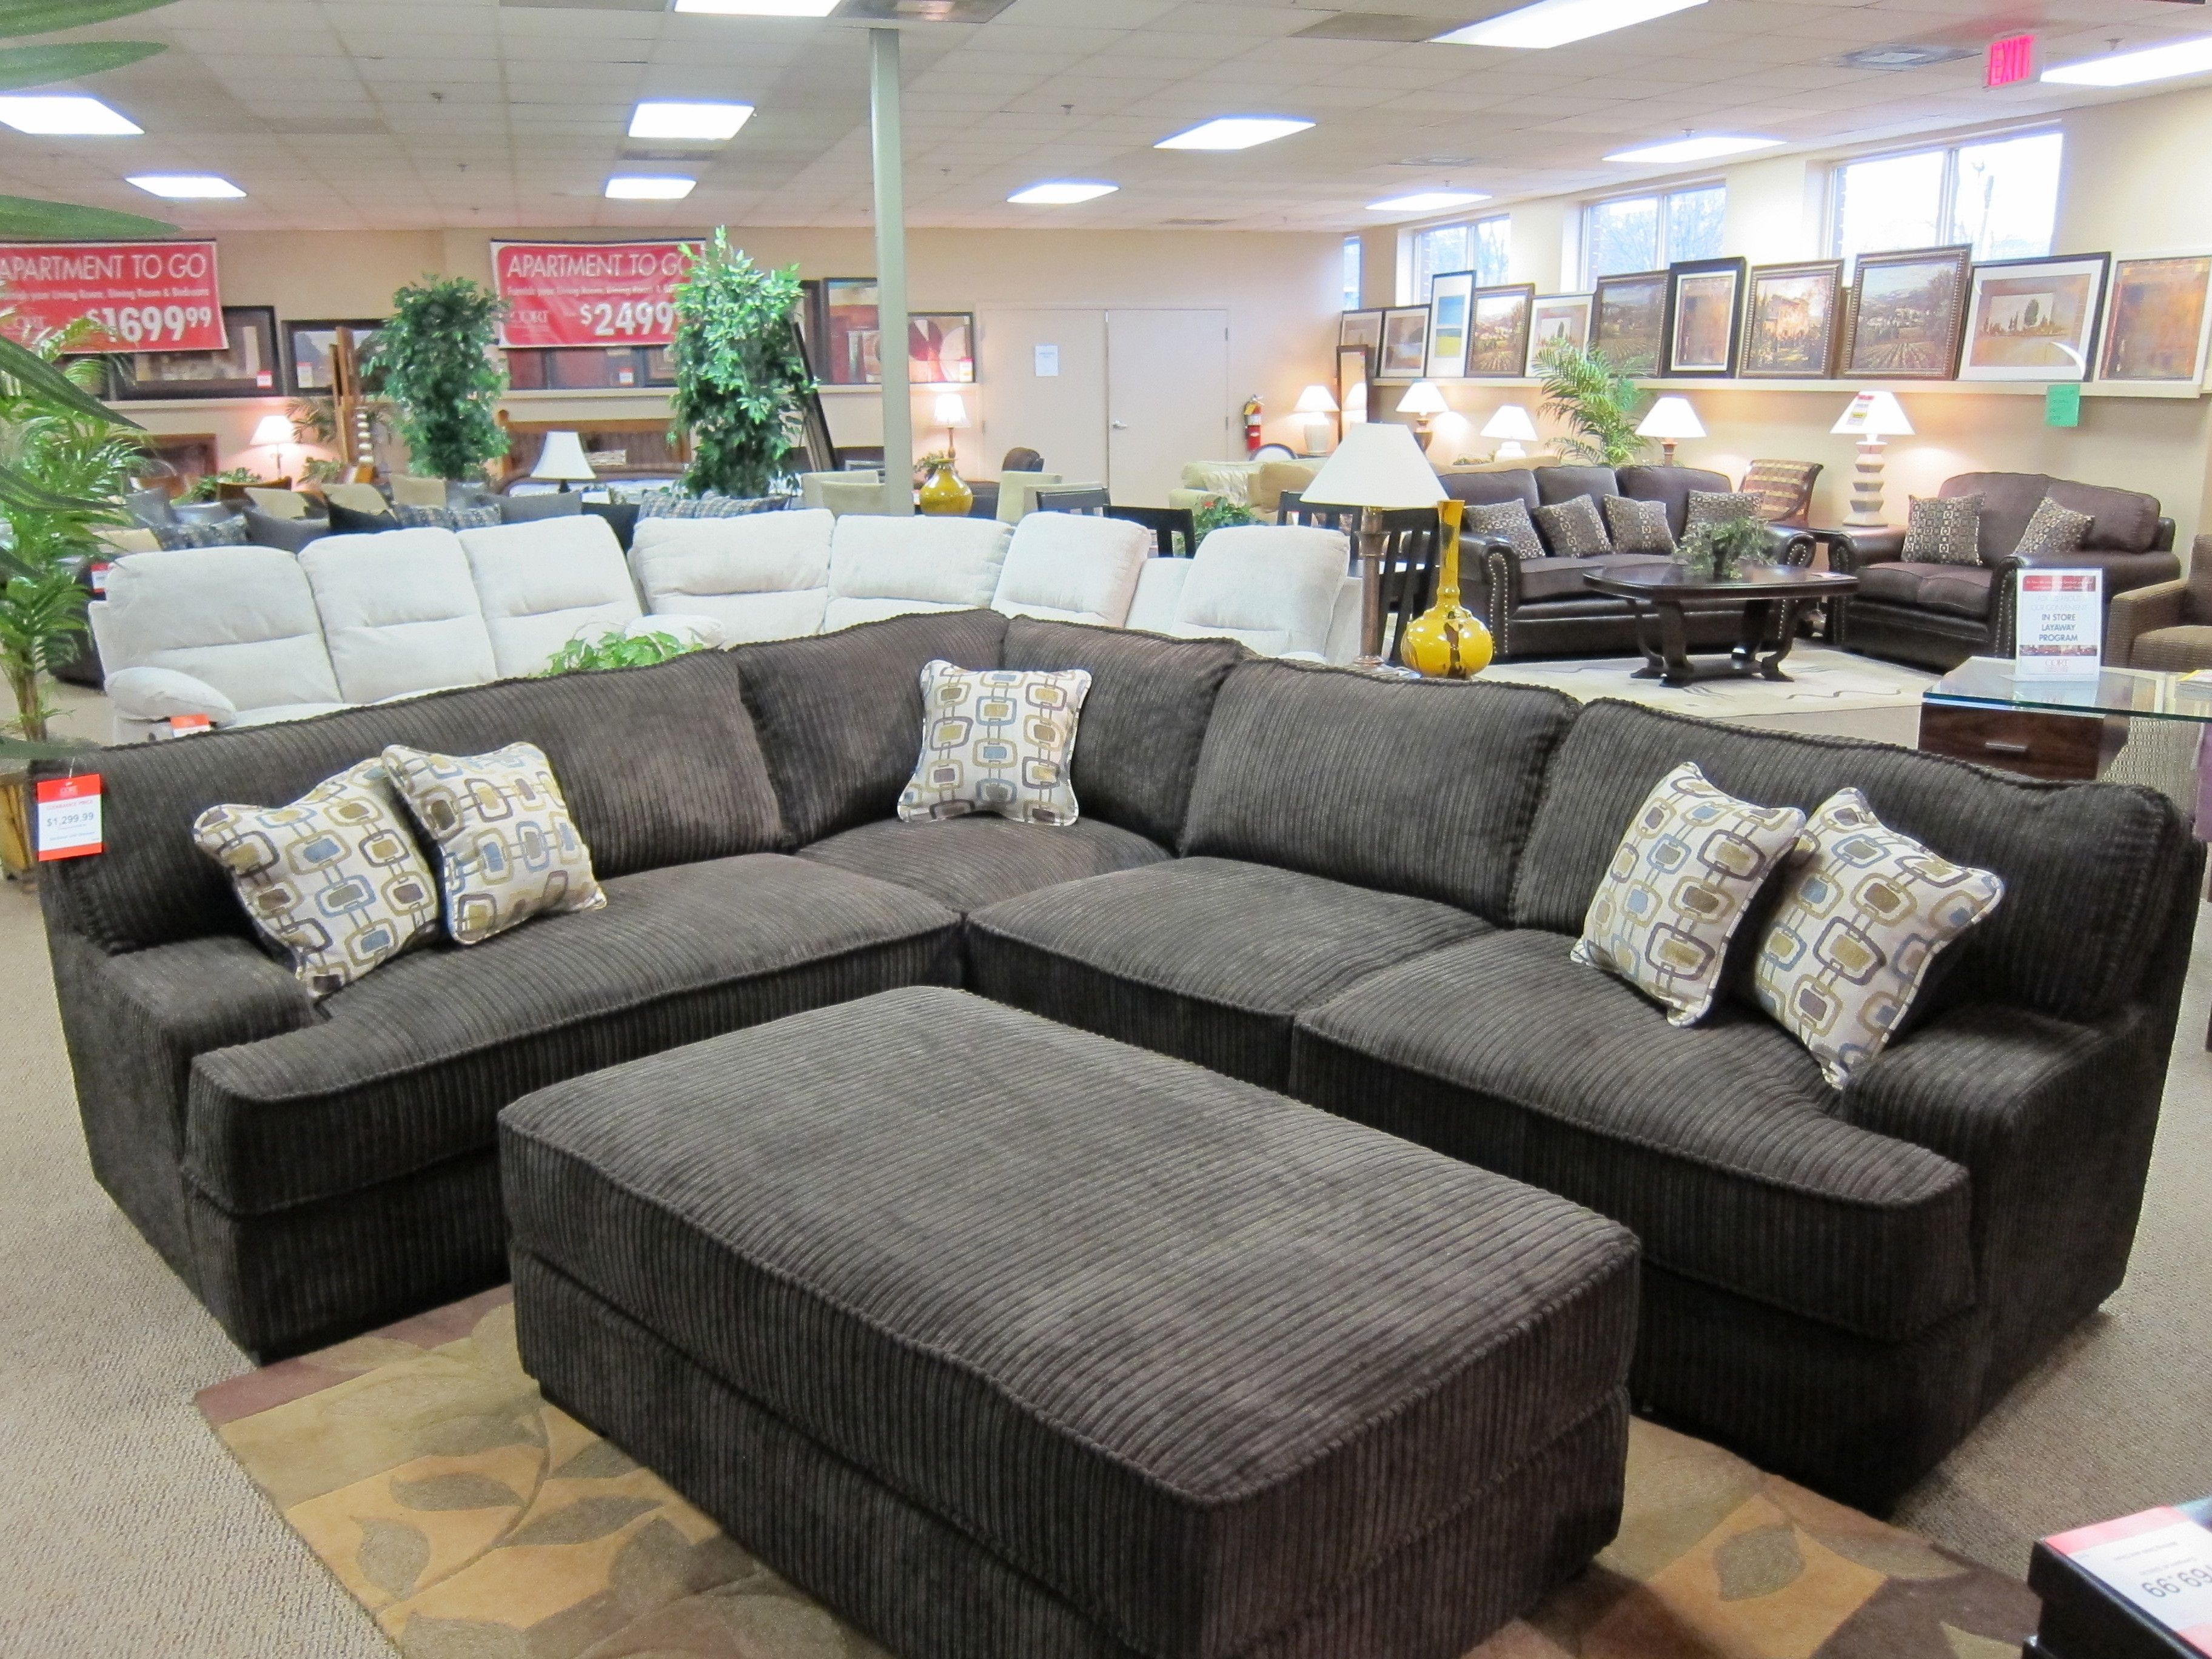 Brown Corduroy Sectional Sectional Sofas Living Room Sectional